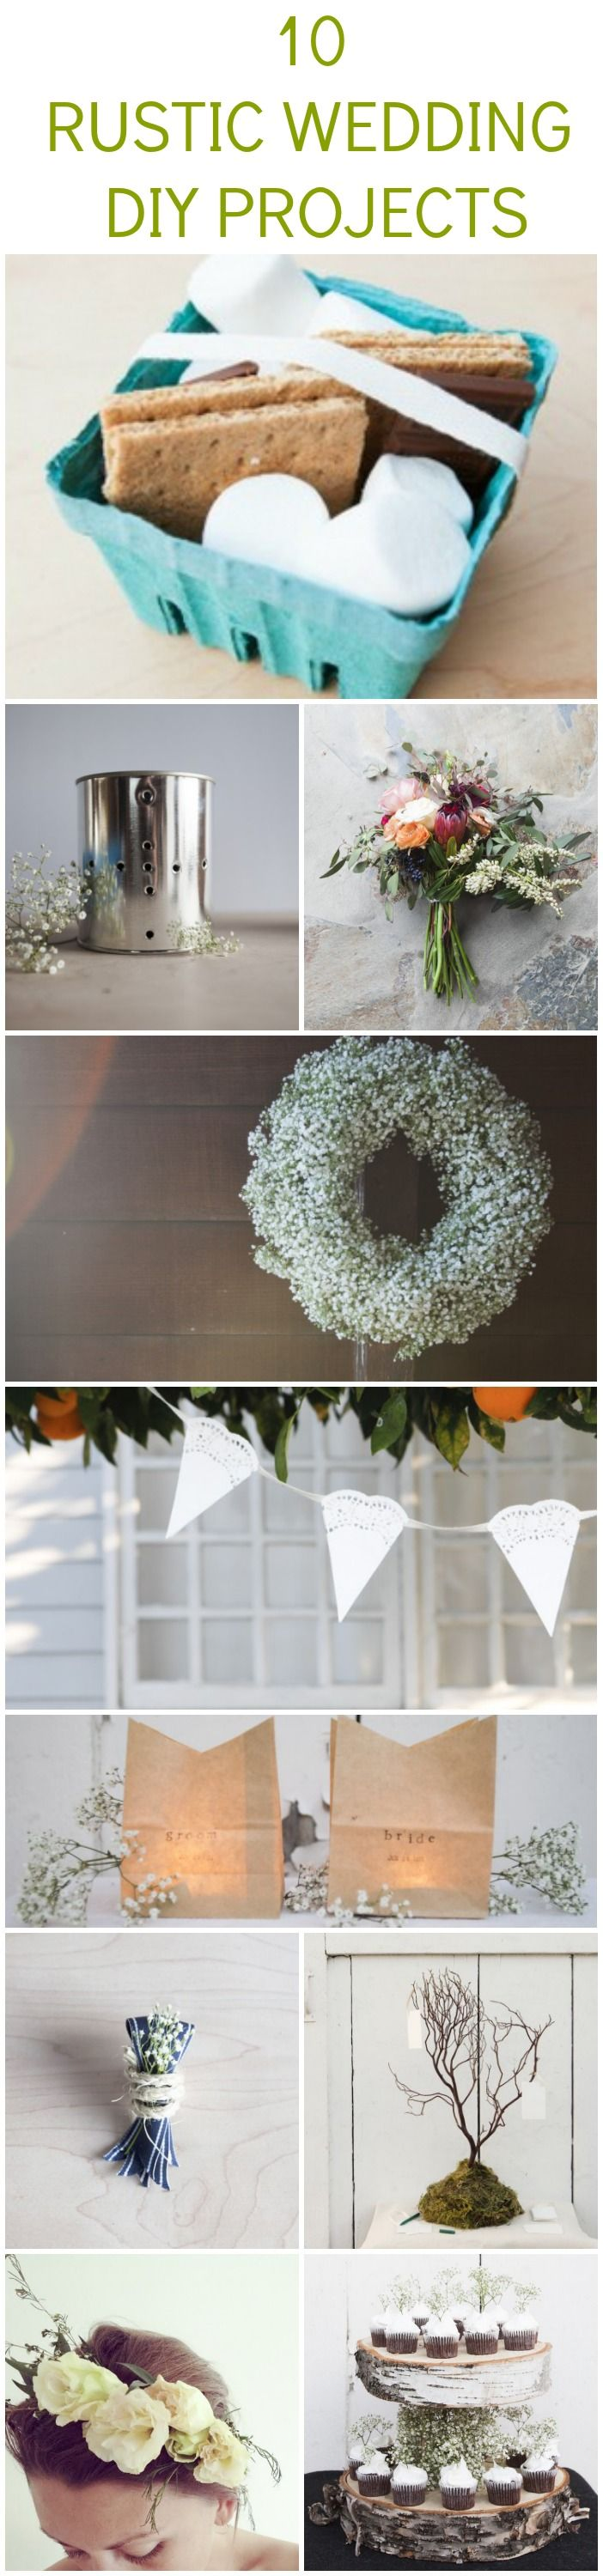 10 Rustic Wedding Diy Projects You Should Try Rustic Wedding Chic Rustic Wedding Diy Projects Rustic Wedding Diy Diy Wedding Projects